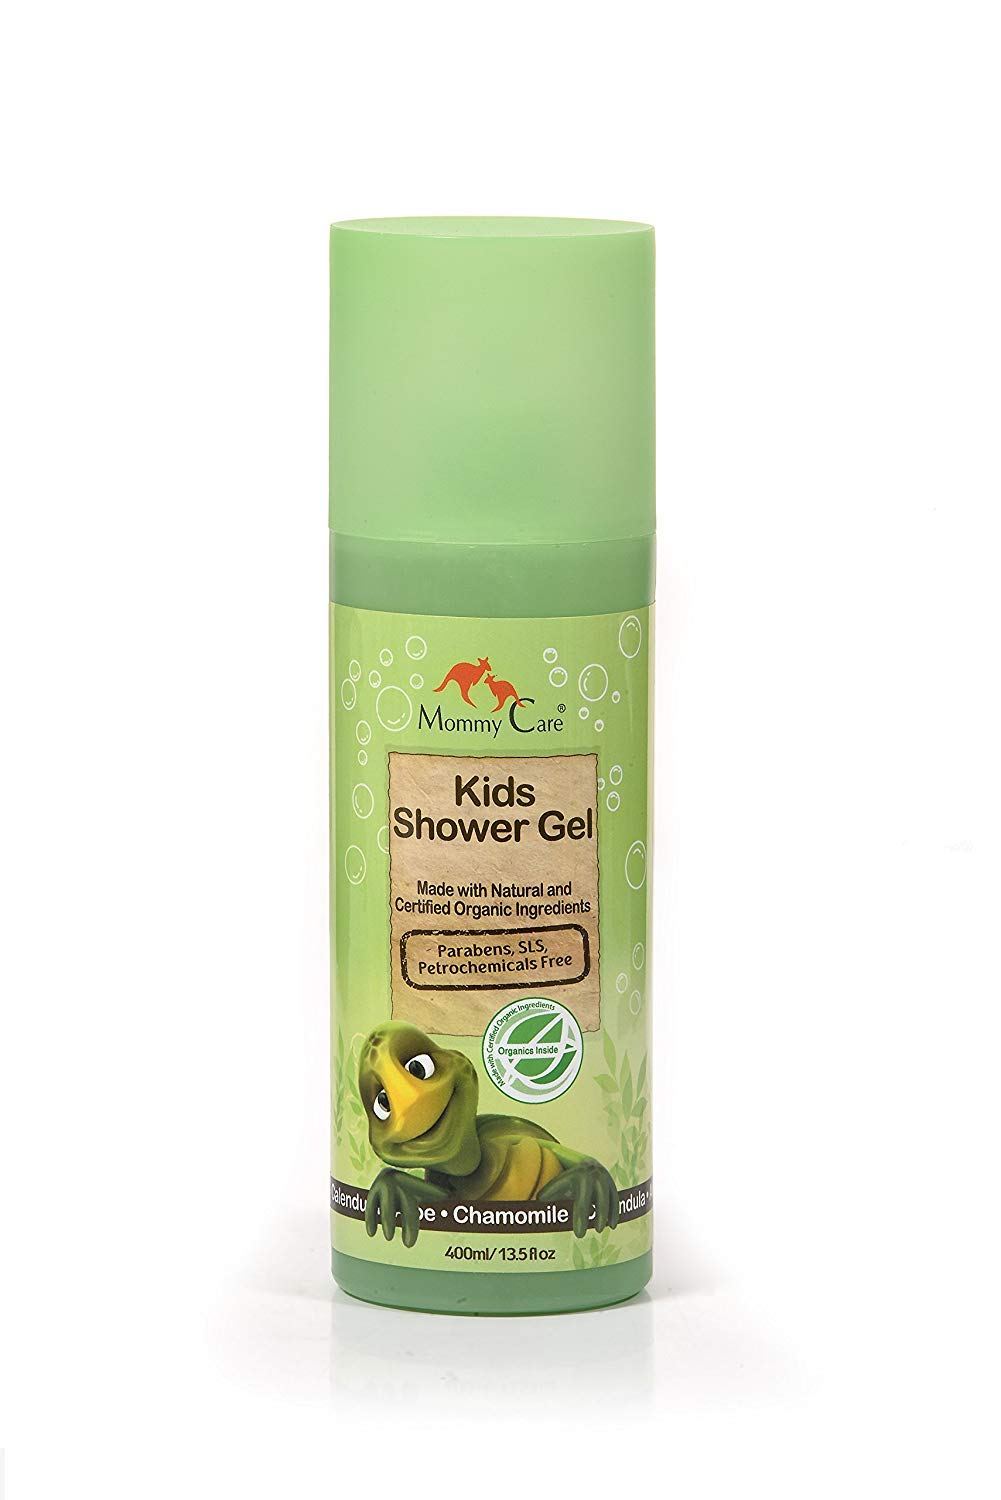 Mommy Care Baby Bath Time Shower Gel Soap Certified Organic 13.52 fl.oz Natural Children Body Wash for Dry Skin Great for Eczema and Newborns Sensitive Skin 400ml